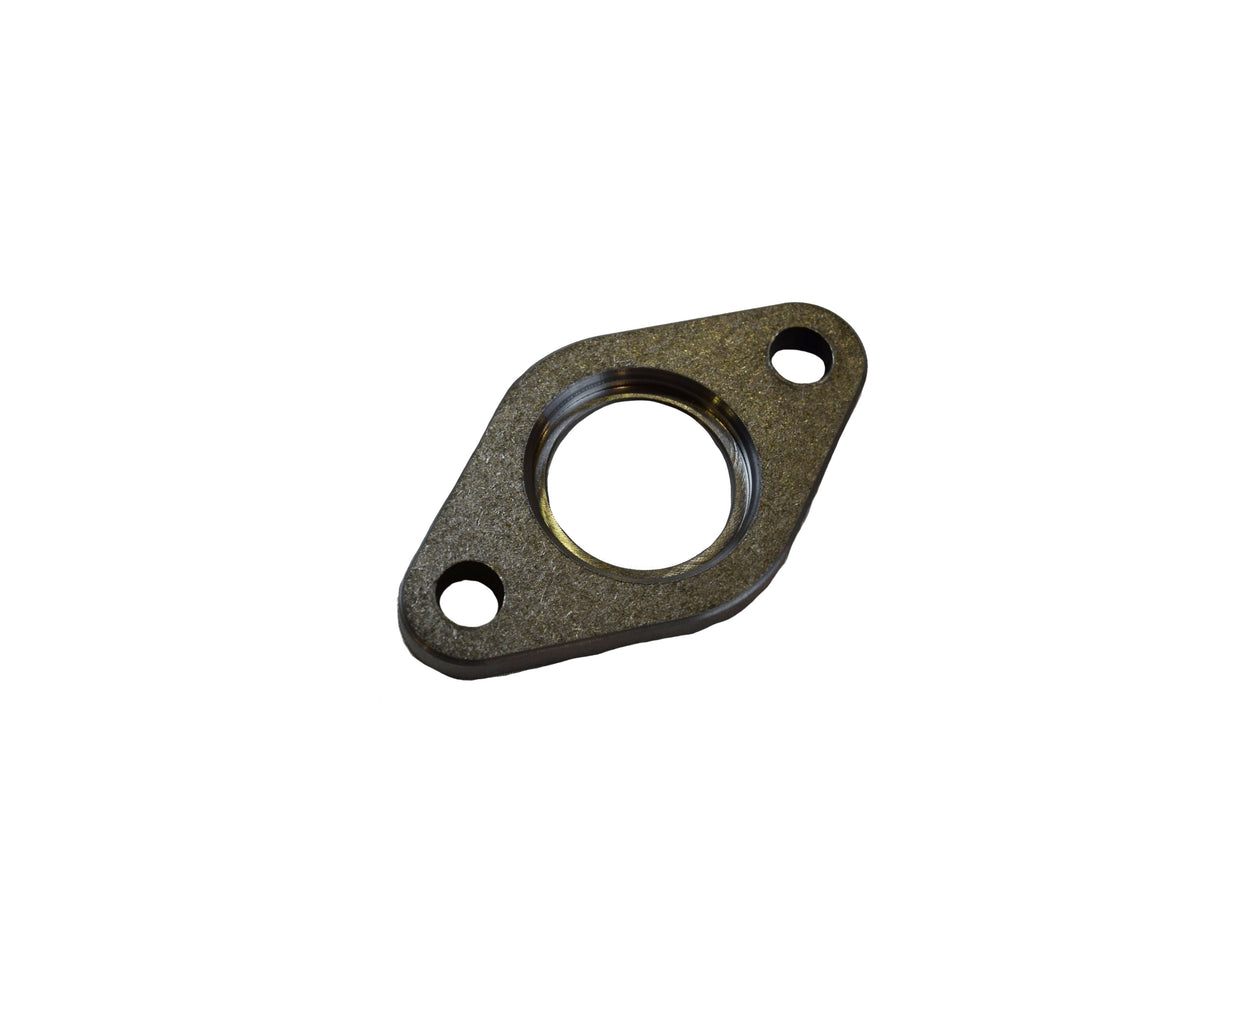 Stepped Exhaust Flange for VC625cc